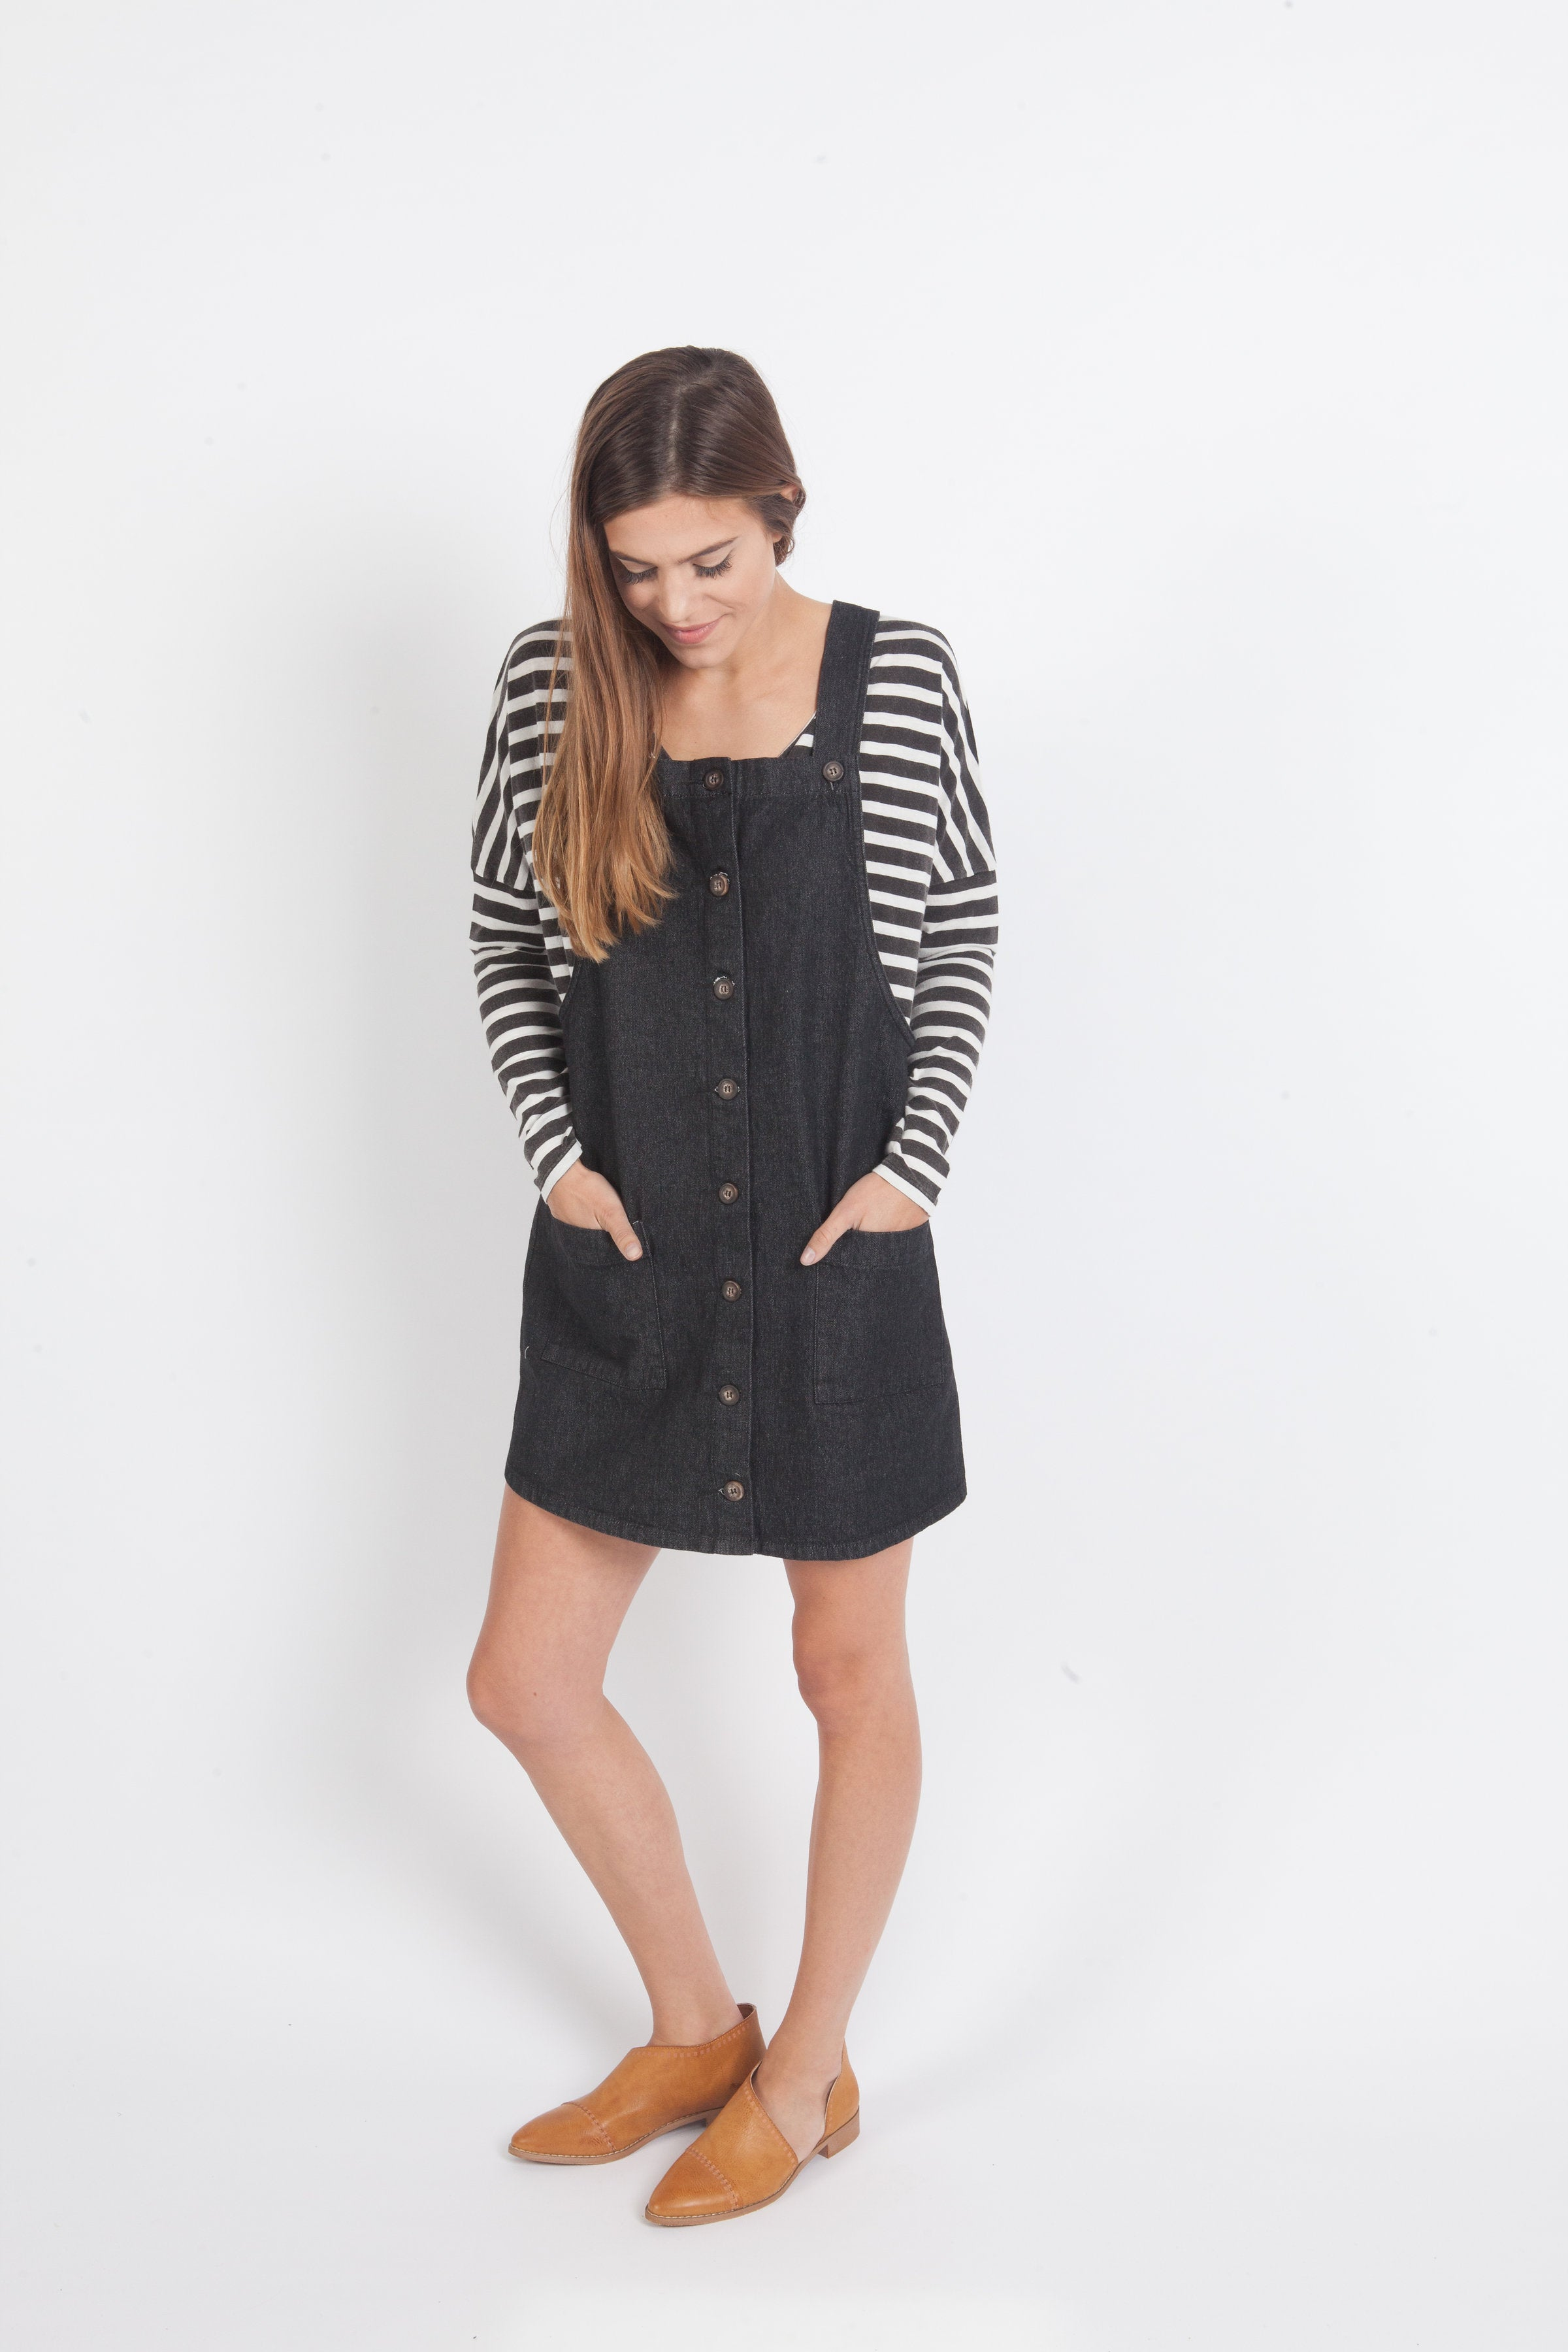 Denim Overall Dress - Black